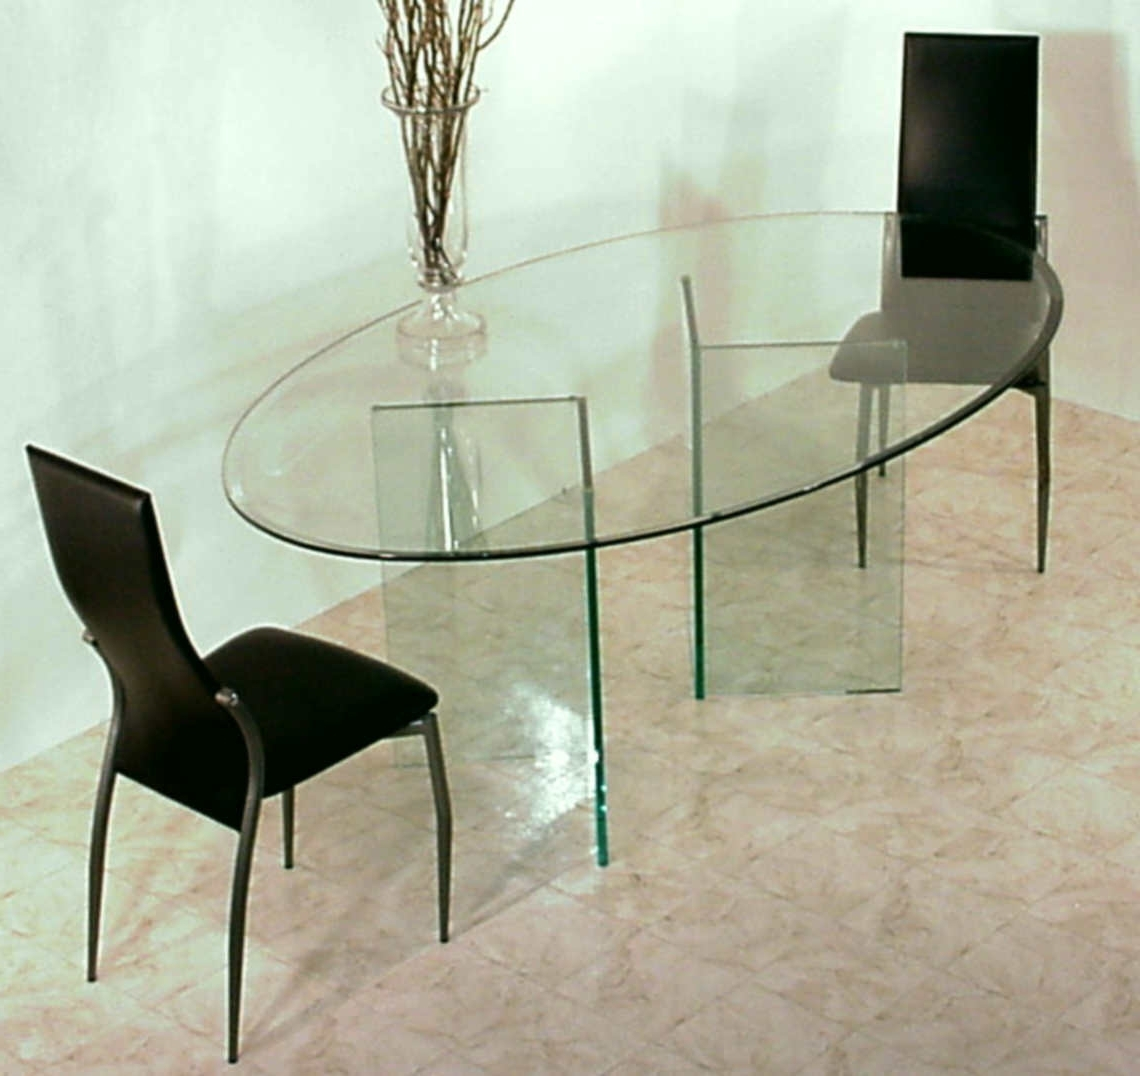 Oval Glass Top Dining Table With Double Curved Glass Bases On Beige Intended For 2018 Curved Glass Dining Tables (View 17 of 25)